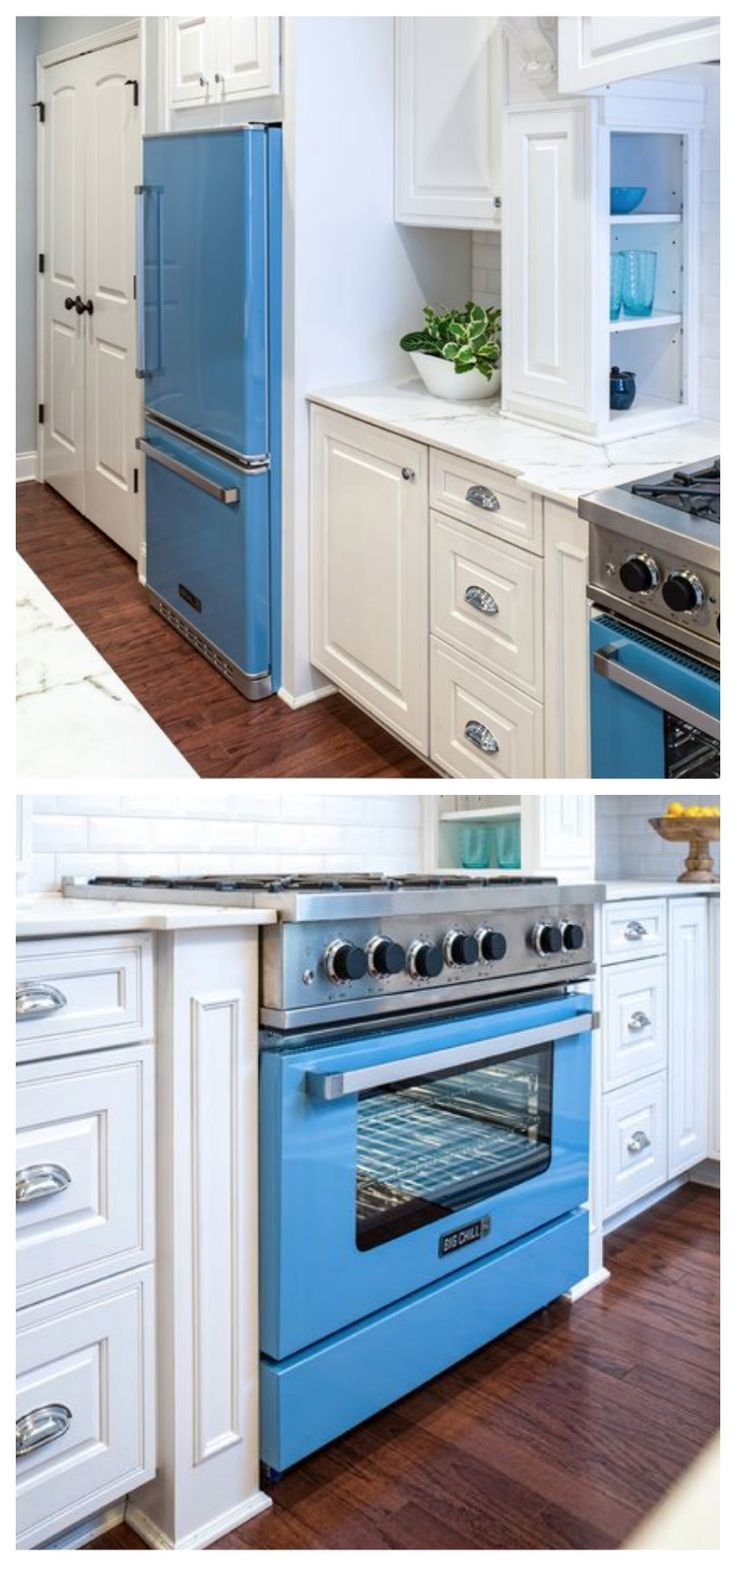 Aqua blue? Deep turquoise? Crisp white? If you've seen the color on the beach, it belongs in your kitchen.